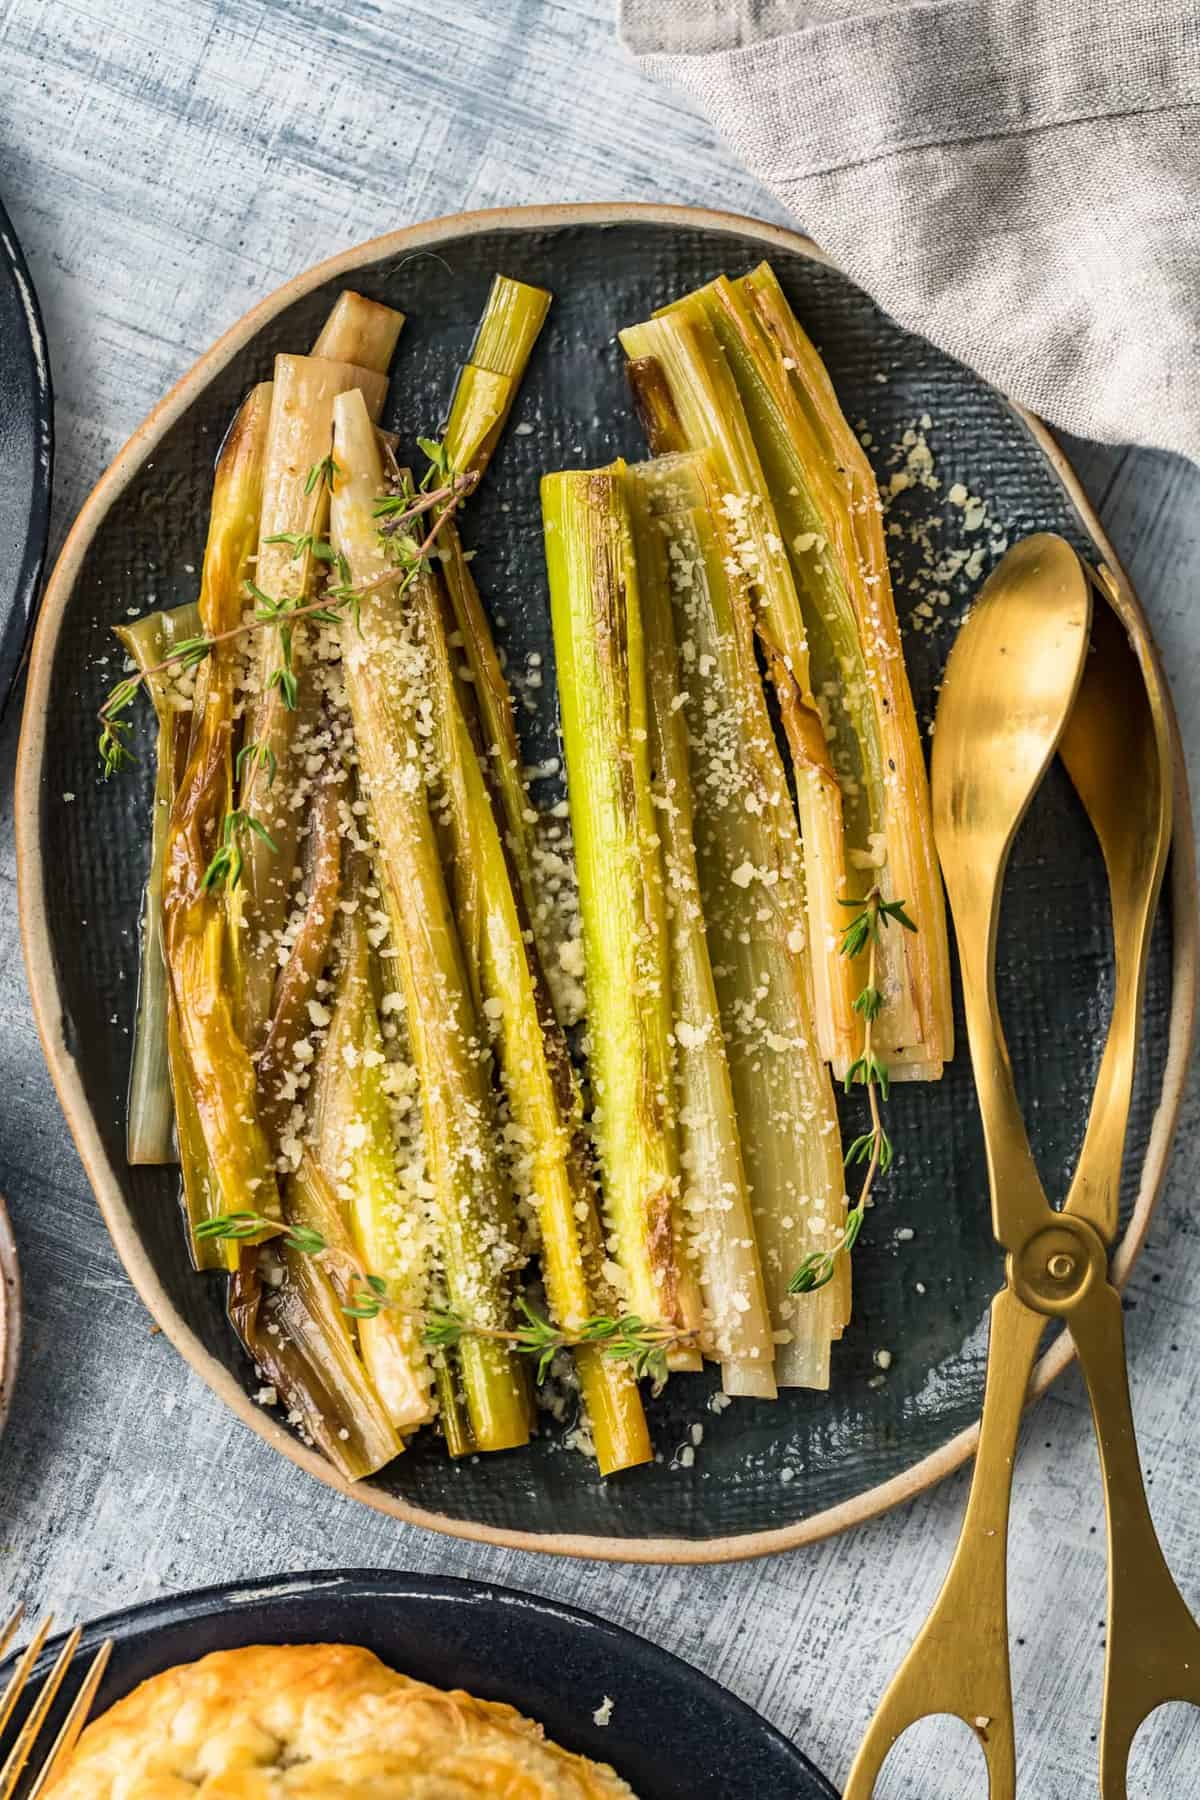 Sauteed Leeks with Parmesan on a black serving dish